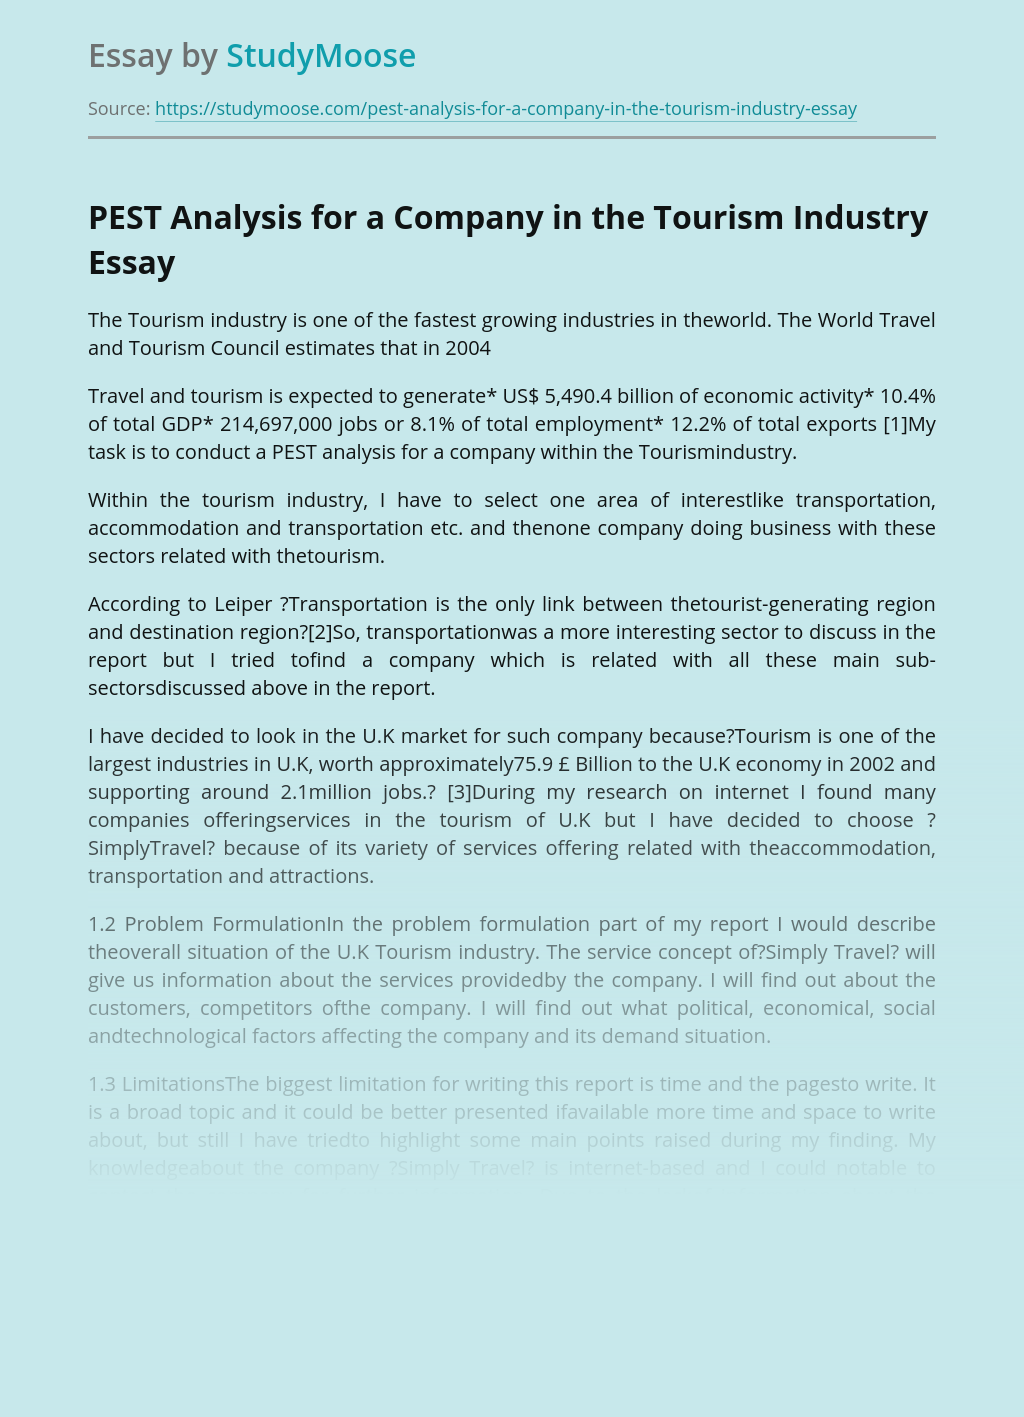 PEST Analysis for a Company in the Tourism Industry